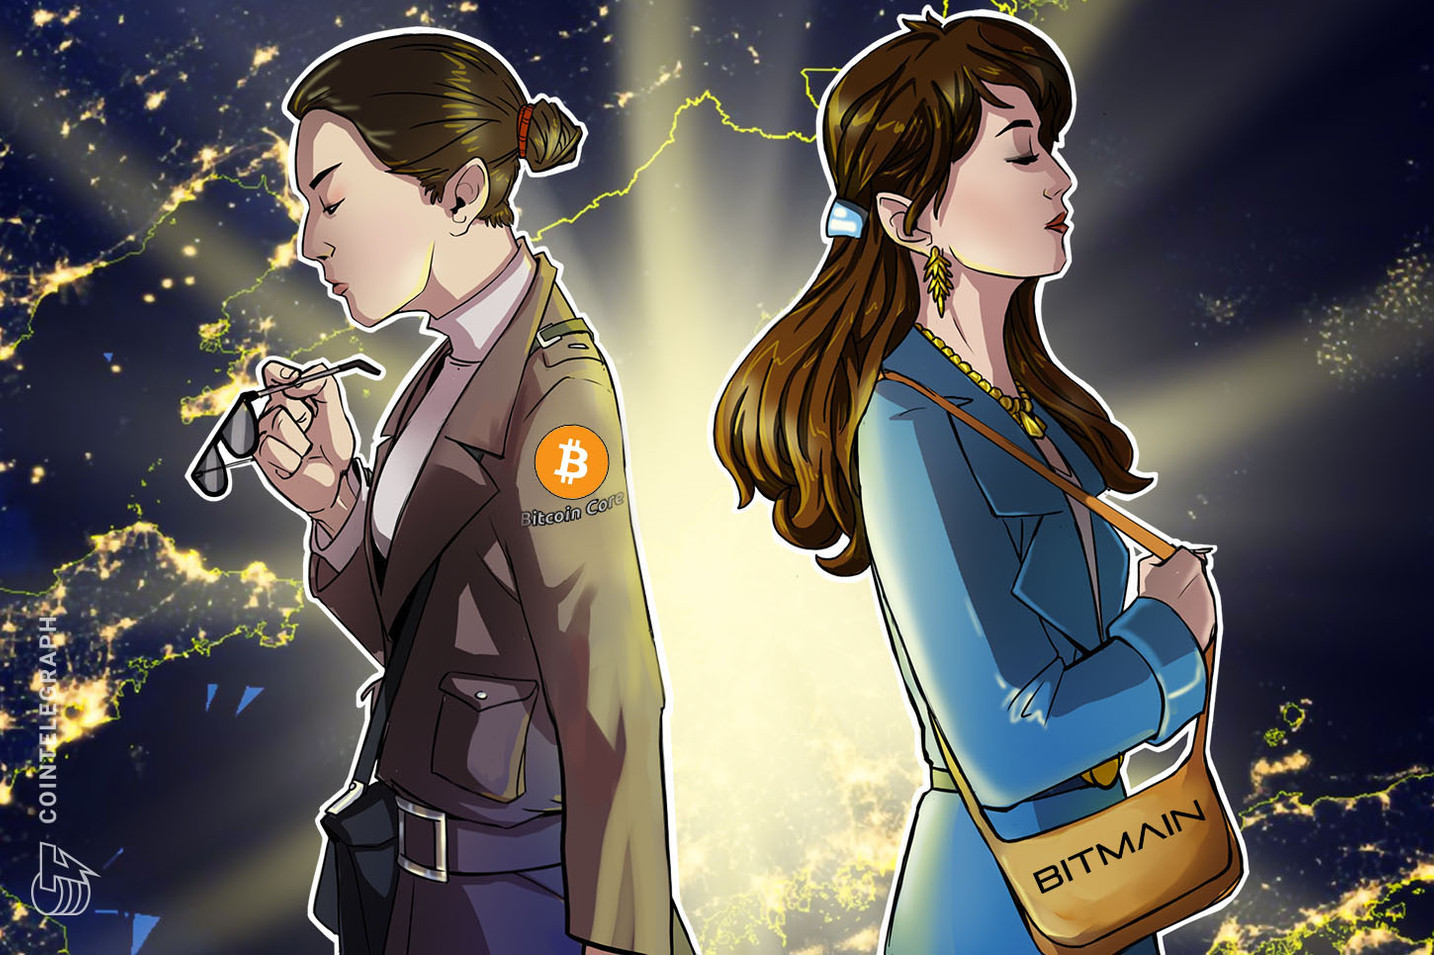 Bitmain reportedly cuts off funding to Bitcoin Core developers